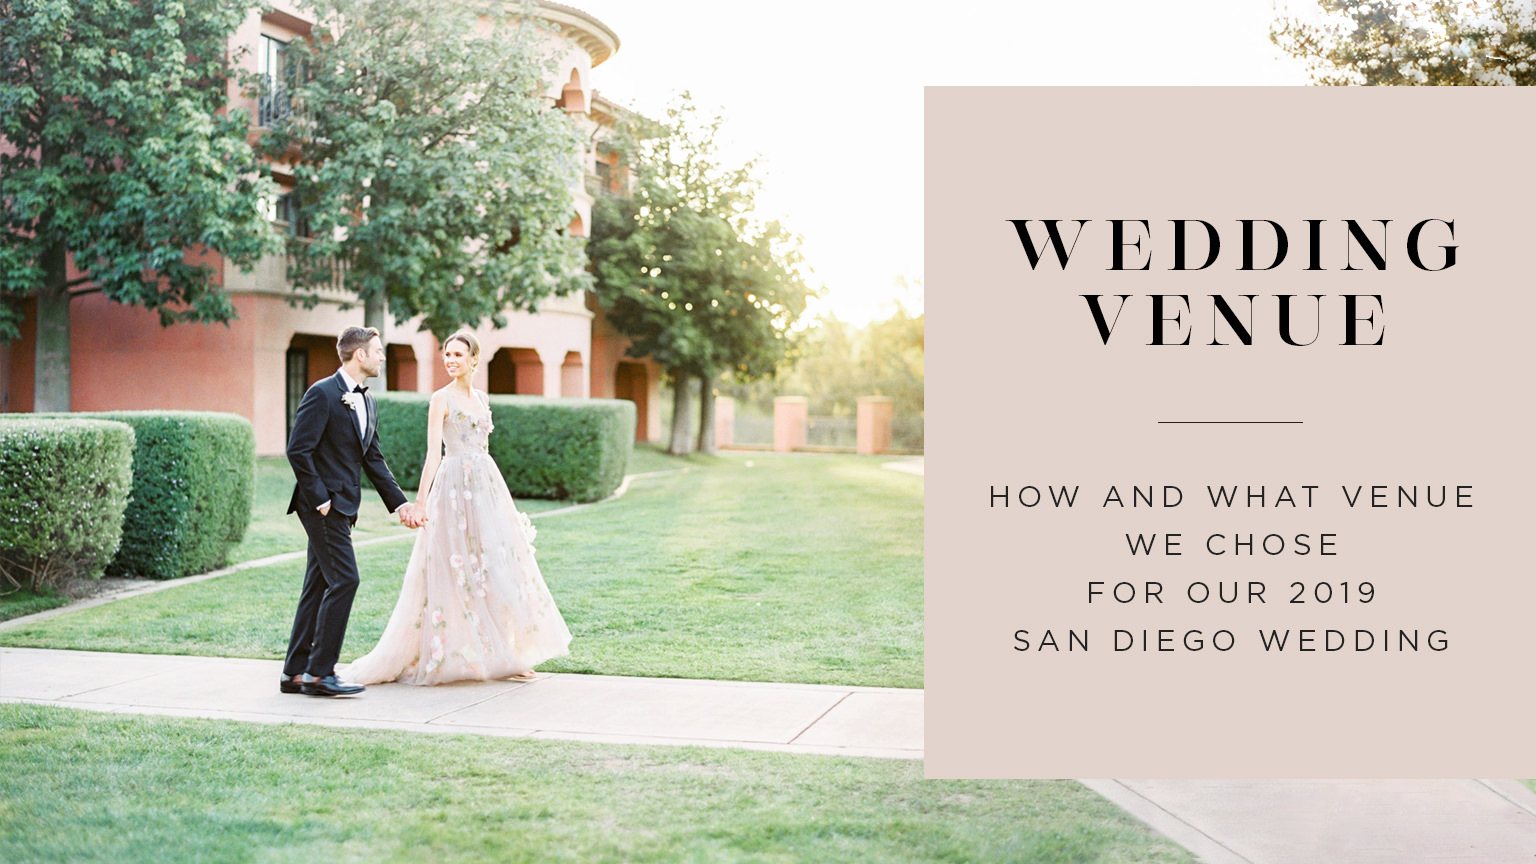 How We Chose Our Wedding Venue in San Diego, European wedding venues in Southern California